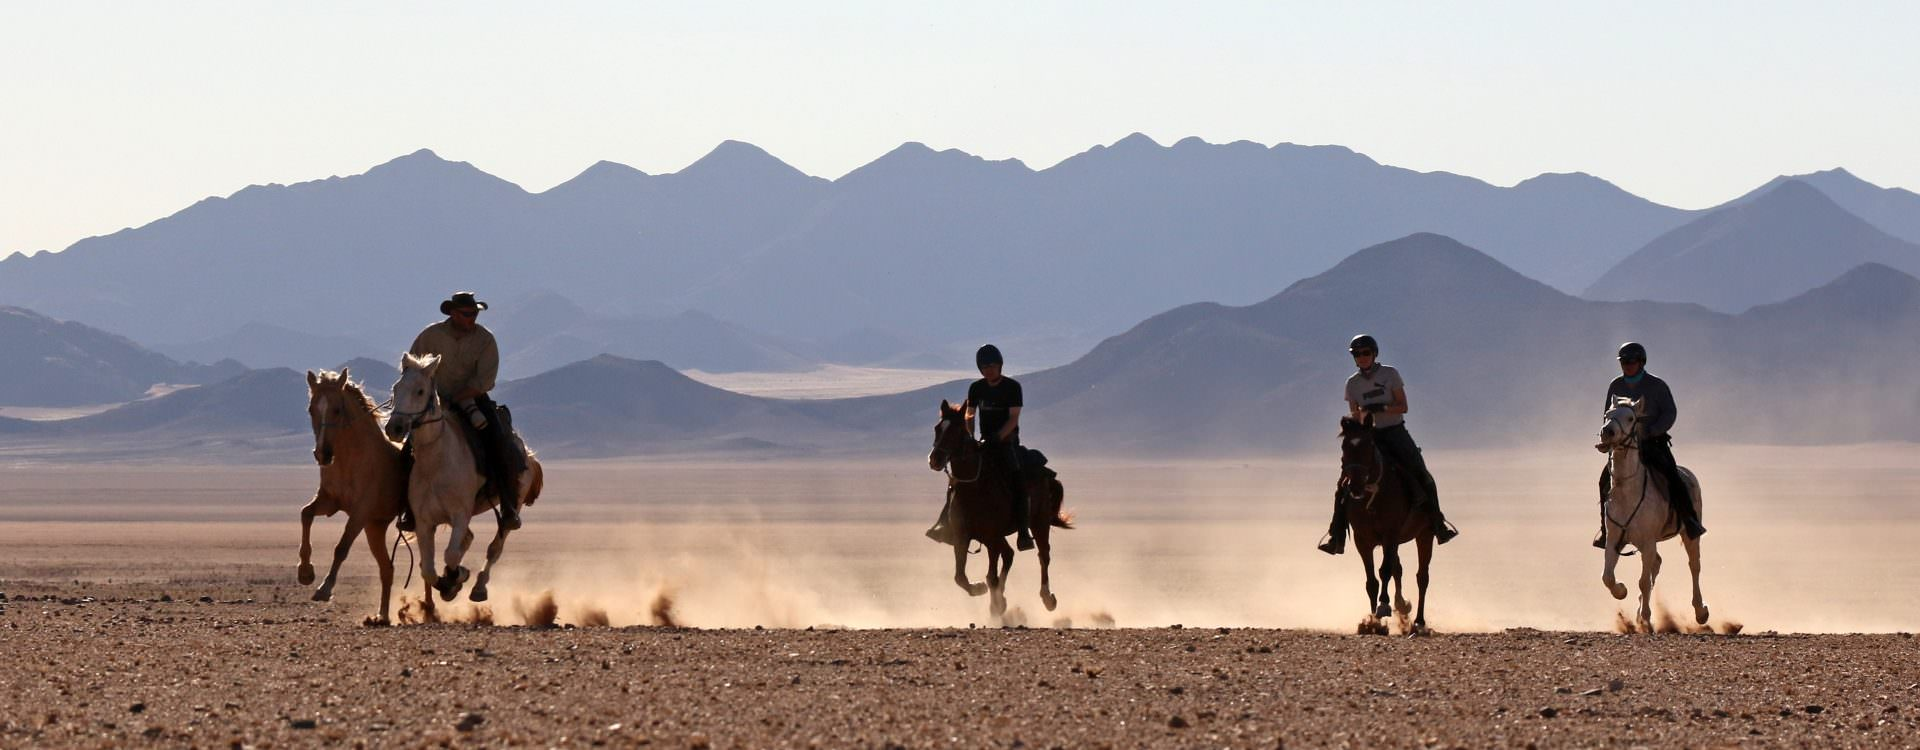 Riding in the Desert Canyons, Namibia